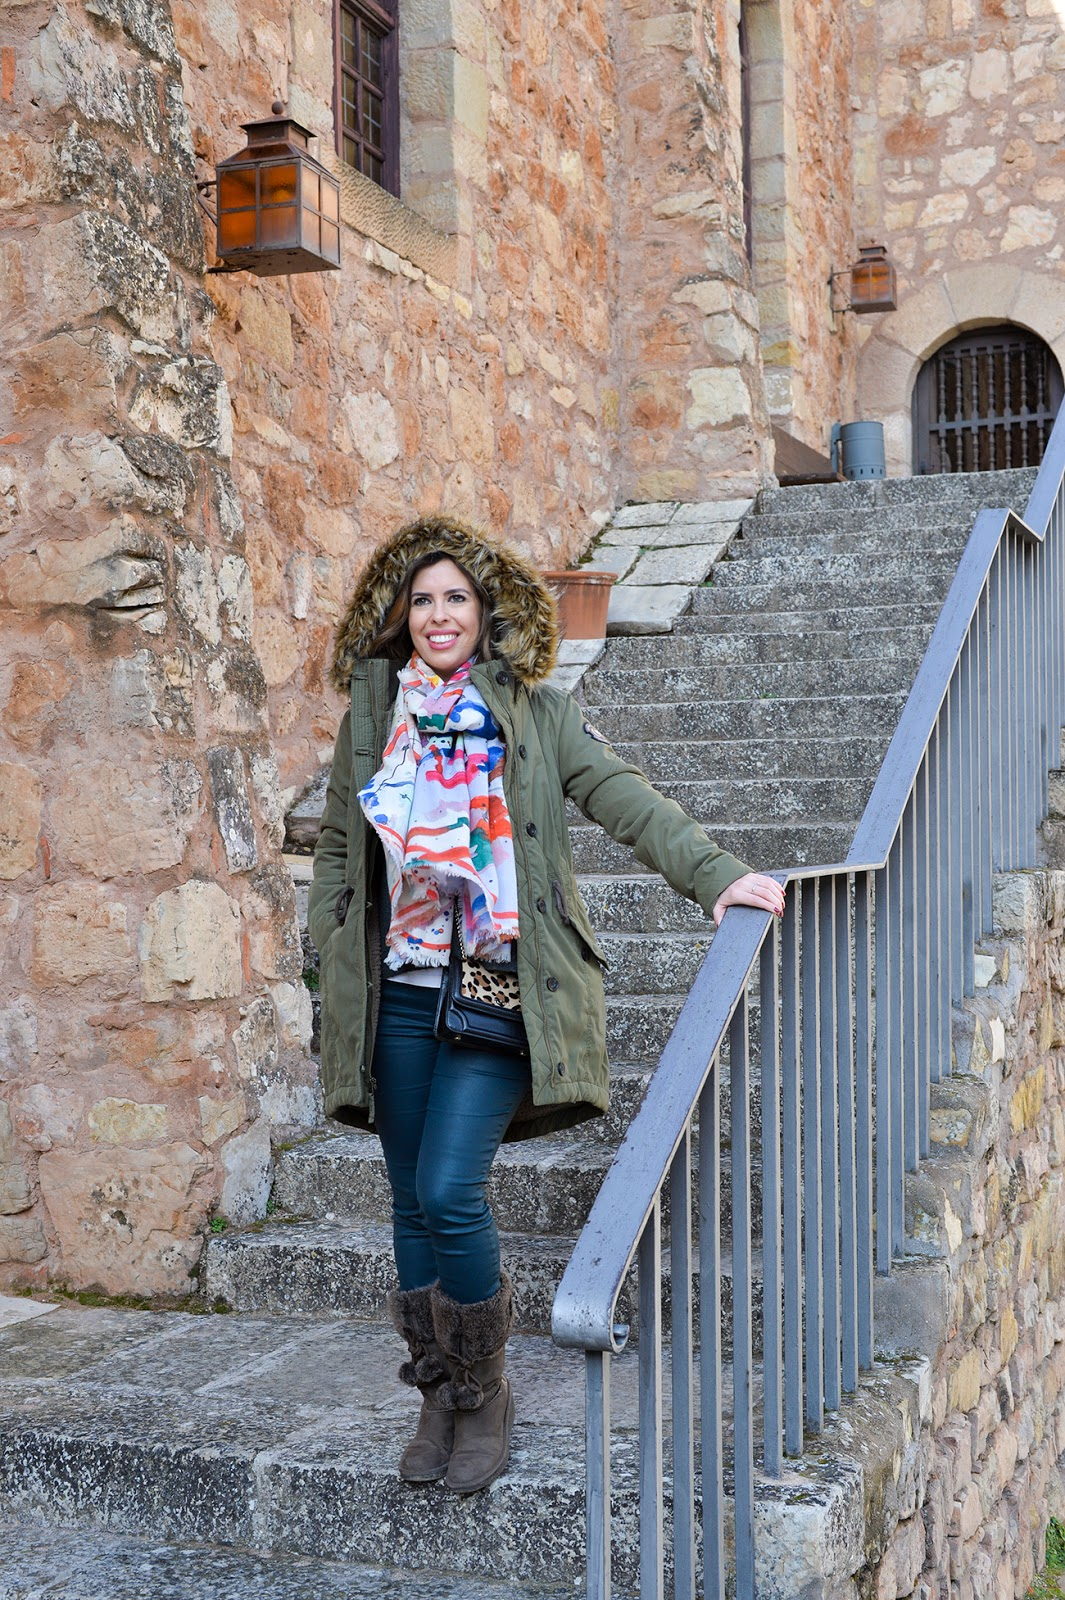 winter travel outfit parka pom-pom snow boots castillo parador sigüenza castle spain españa